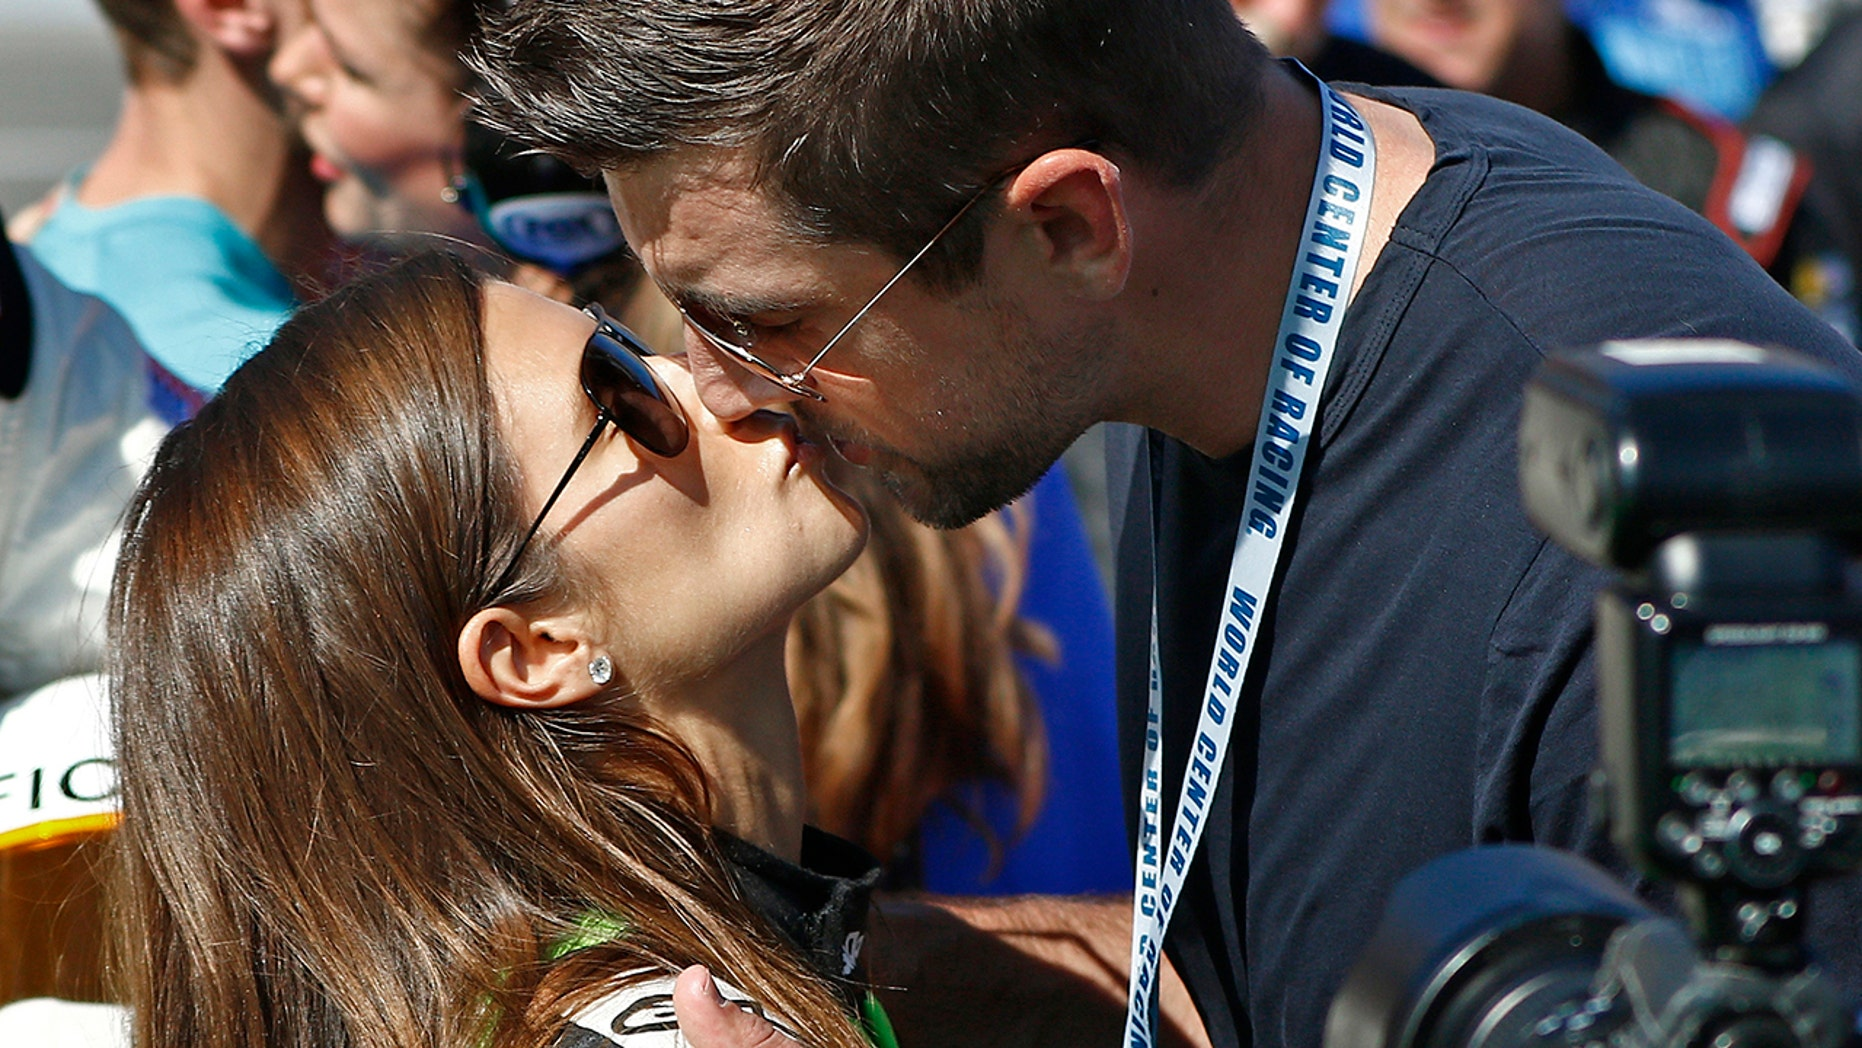 Danica Patrick, left, gets a kiss from Green Bay Packers quarterback Aaron Rodgers, right, before the NASCAR Daytona 500 Cup series auto race at Daytona International Speedway in Daytona Beach, Fla., Sunday, Feb. 18, 2018.